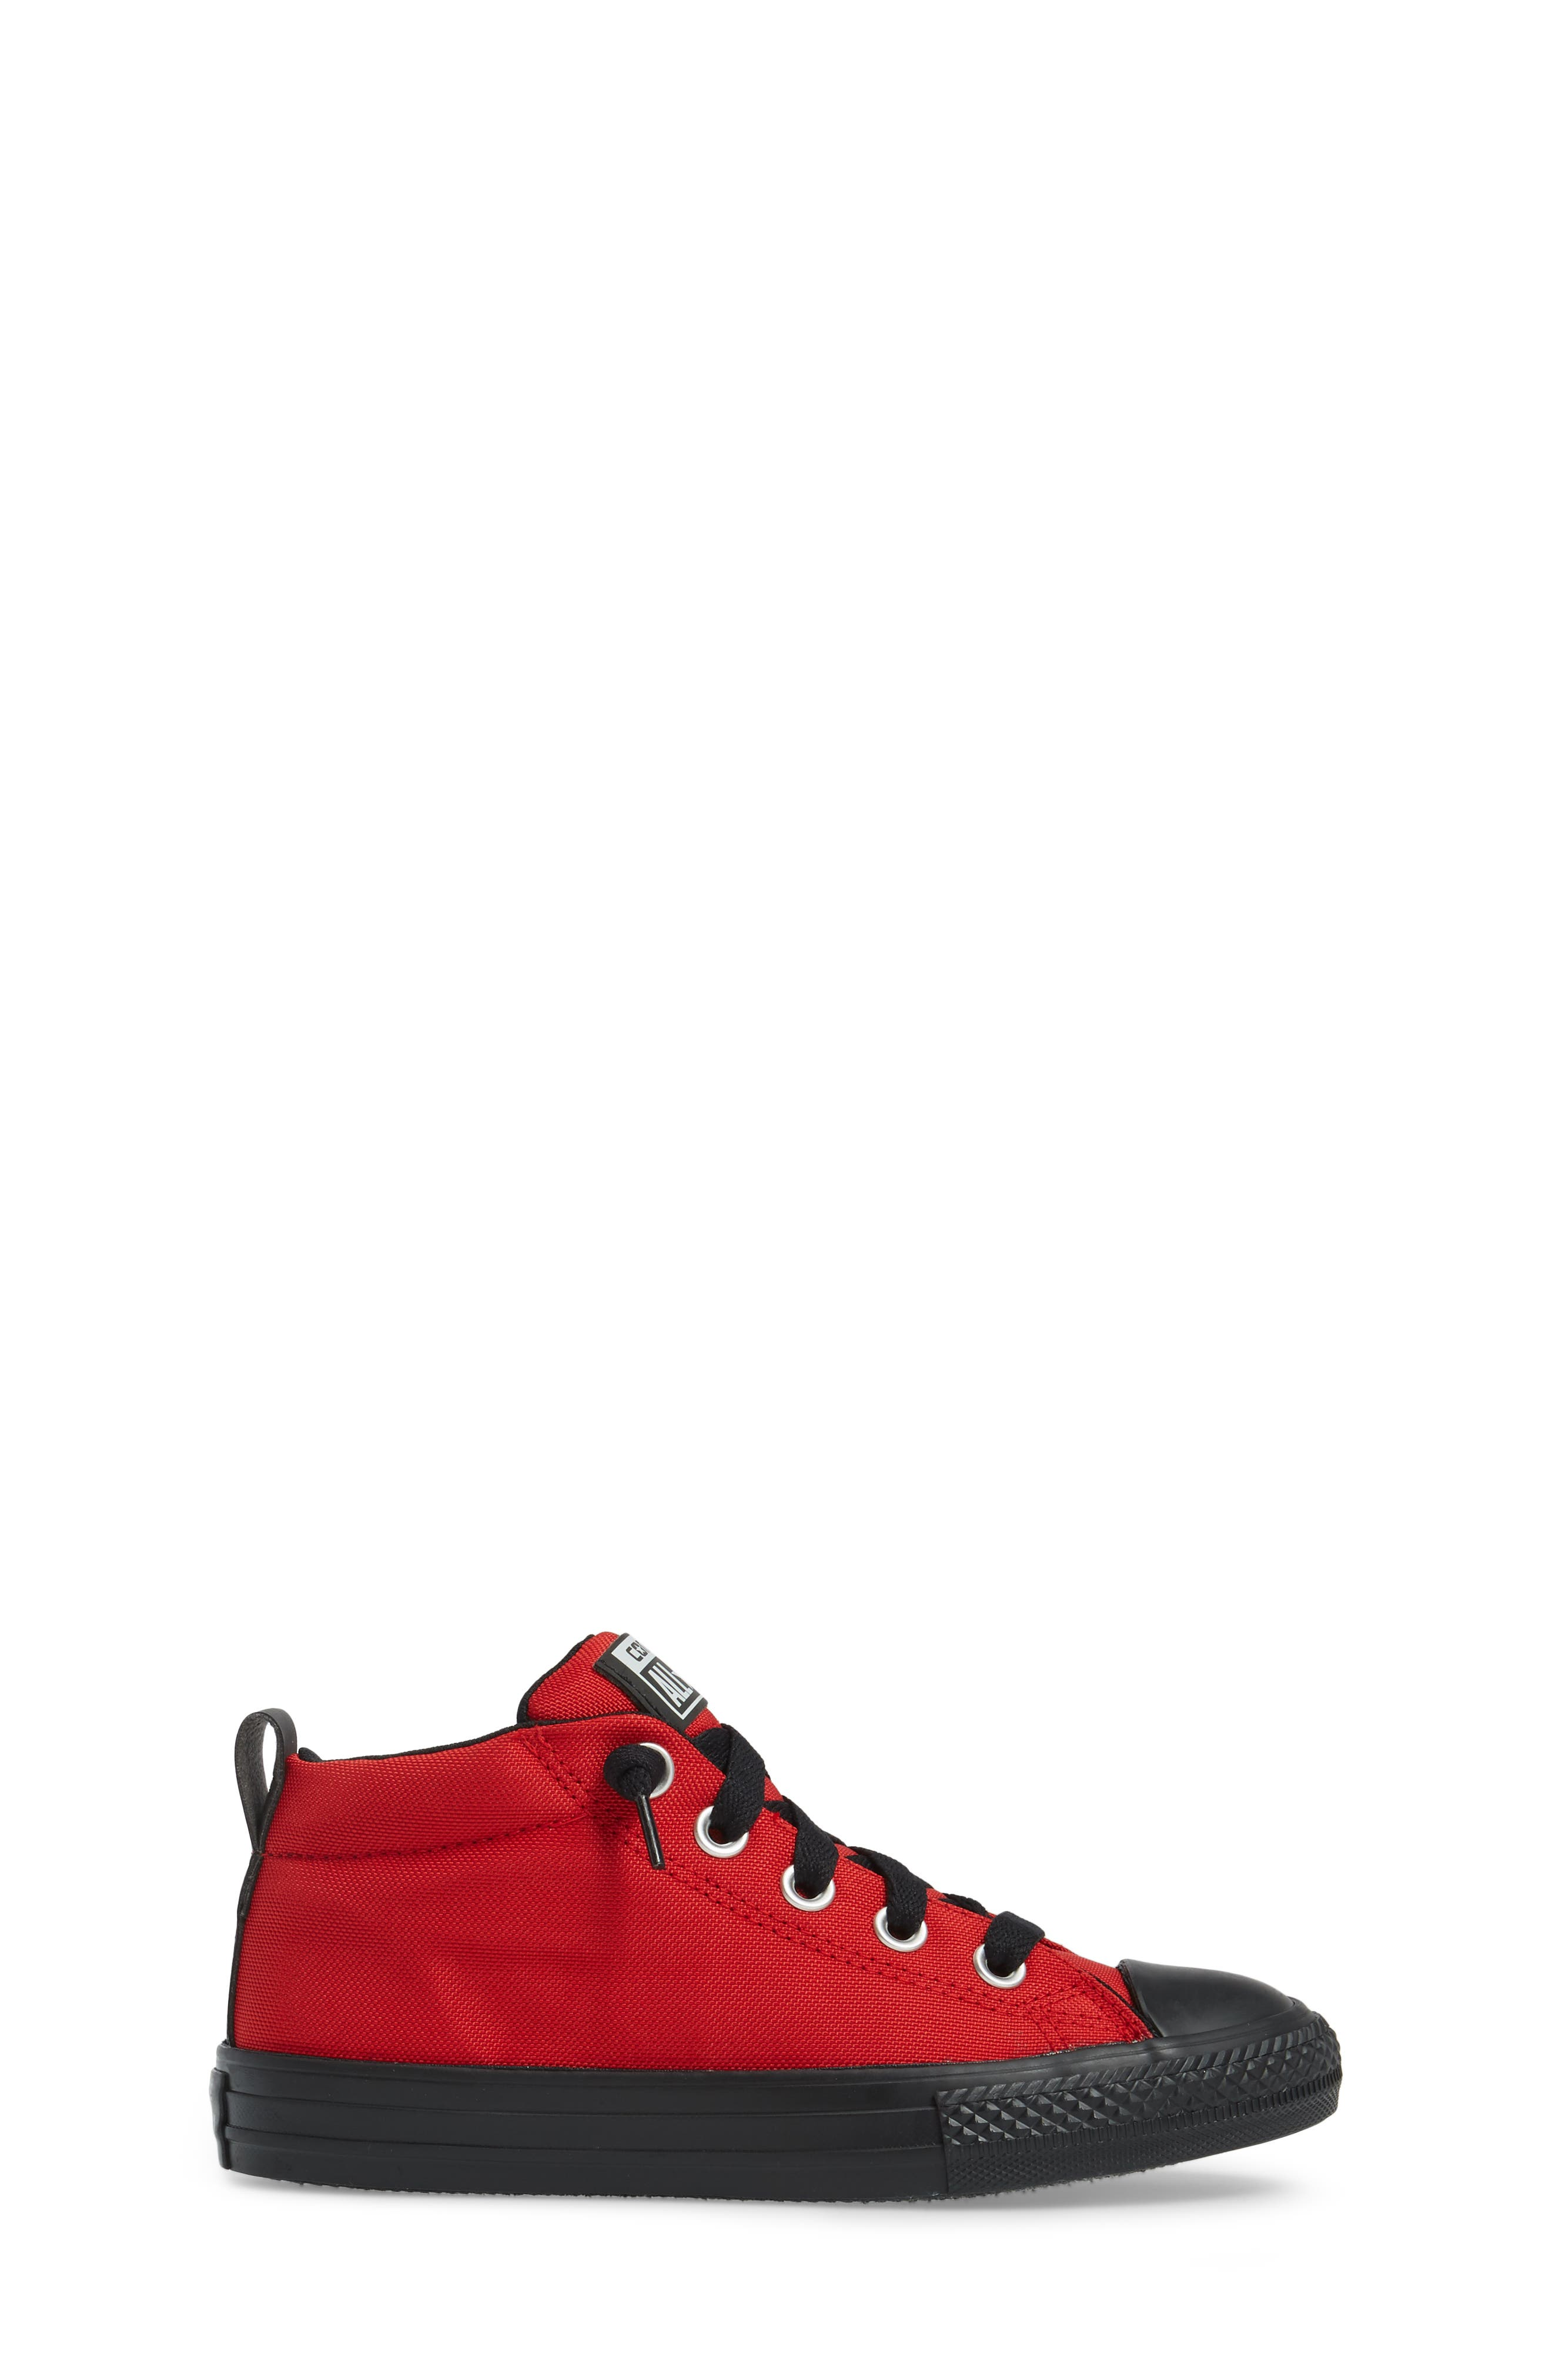 Alternate Image 3  - Converse Chuck Taylor® All Star® Street Mid Top Sneaker (Baby, Walker, Toddler, Little Kid & Big Kid)